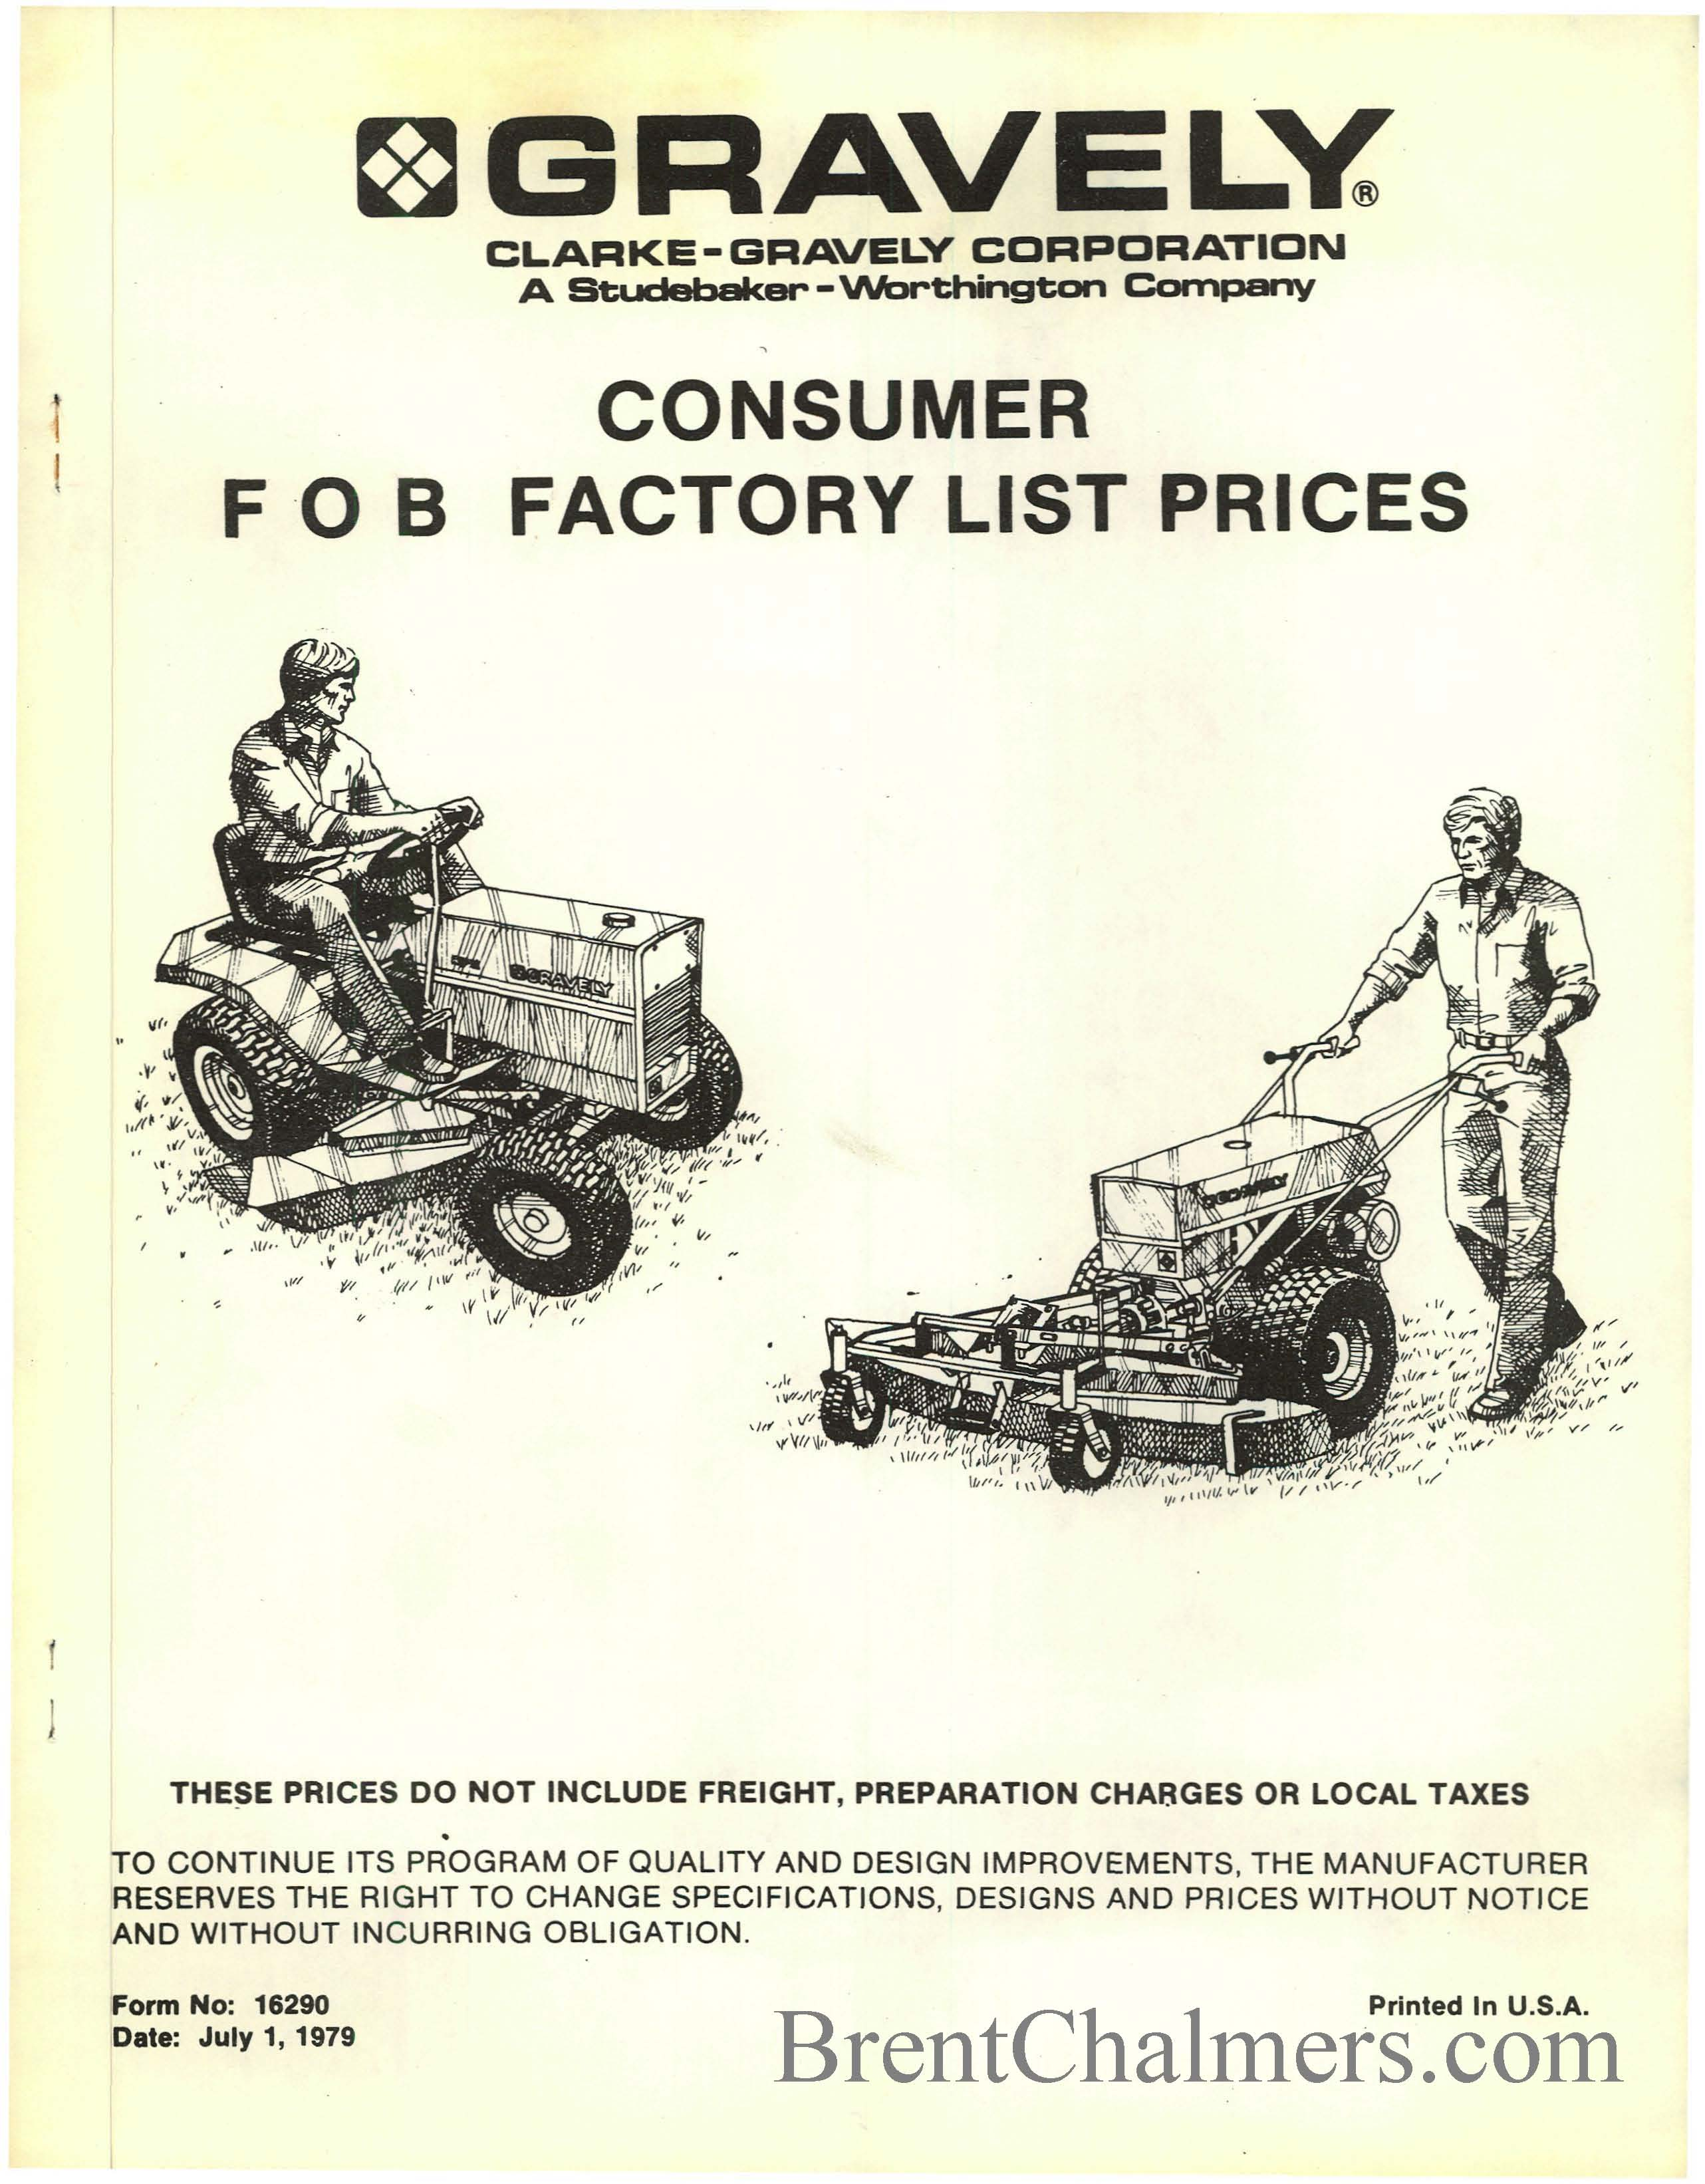 GRAVELY_CONSUMER_FOB_FACTORY_LIST_PRICES gravely tractor manuals gravely commercial 12 wiring diagram at crackthecode.co